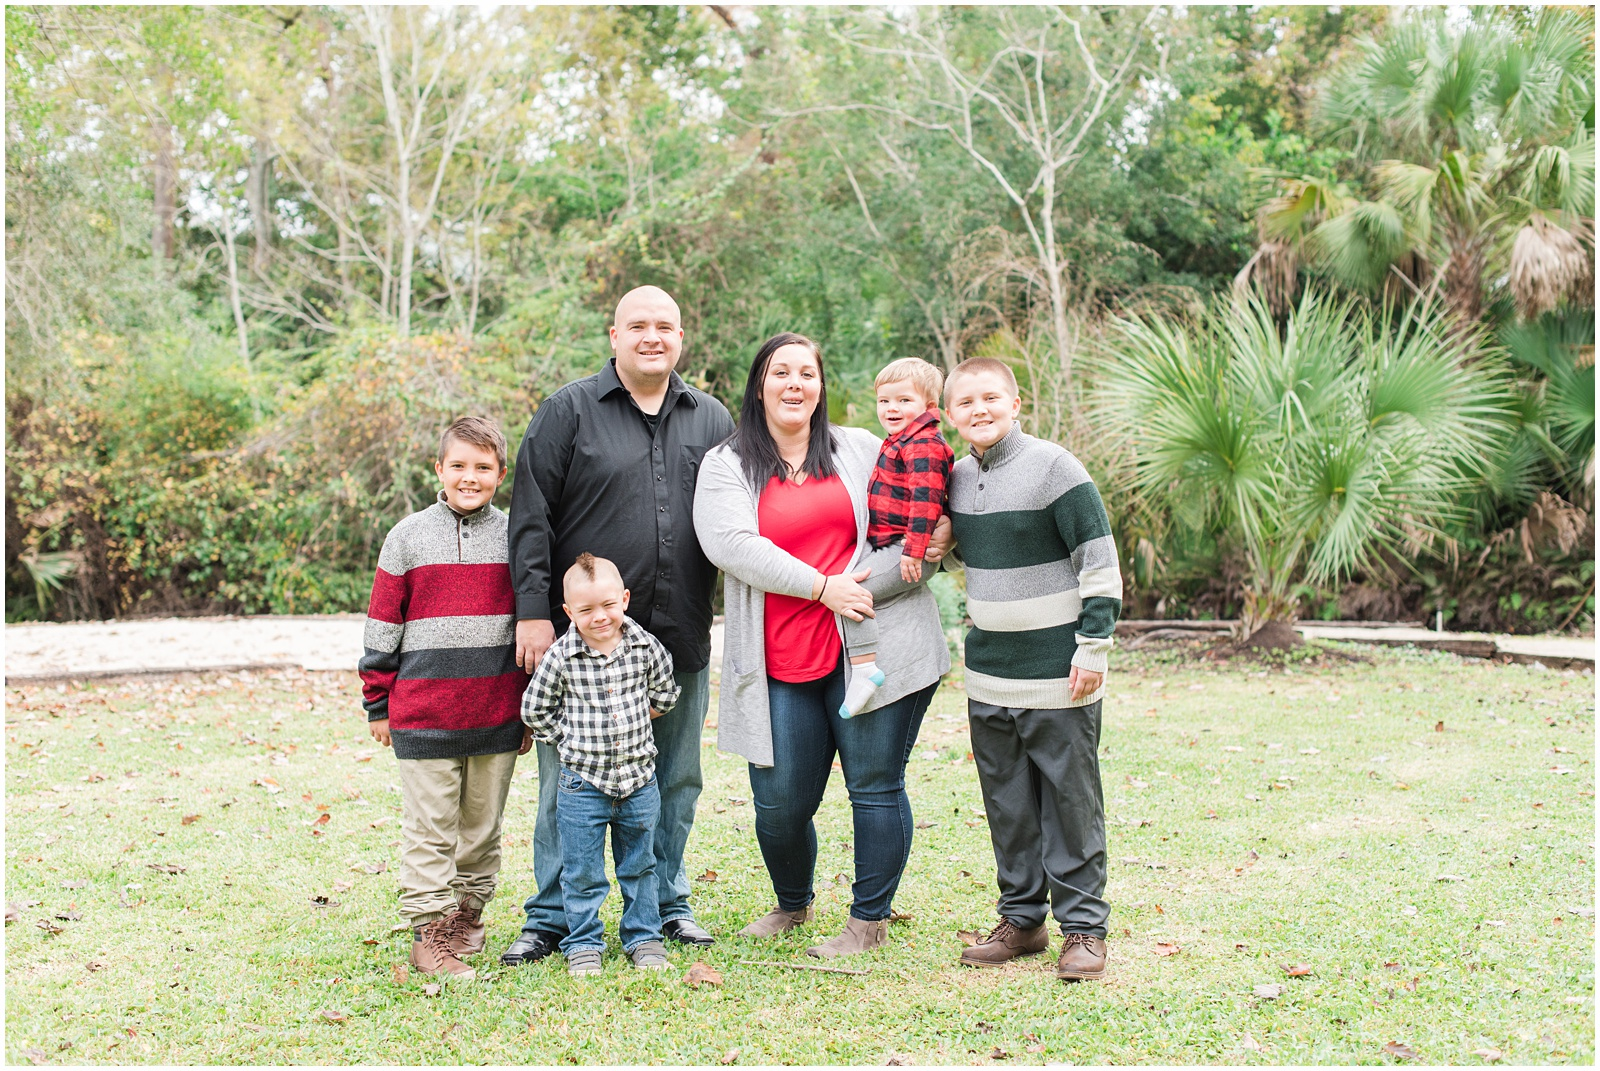 Christmas_Mini Sessions_Holidays_Howell Park_Jacksonville_Florida_41.jpg